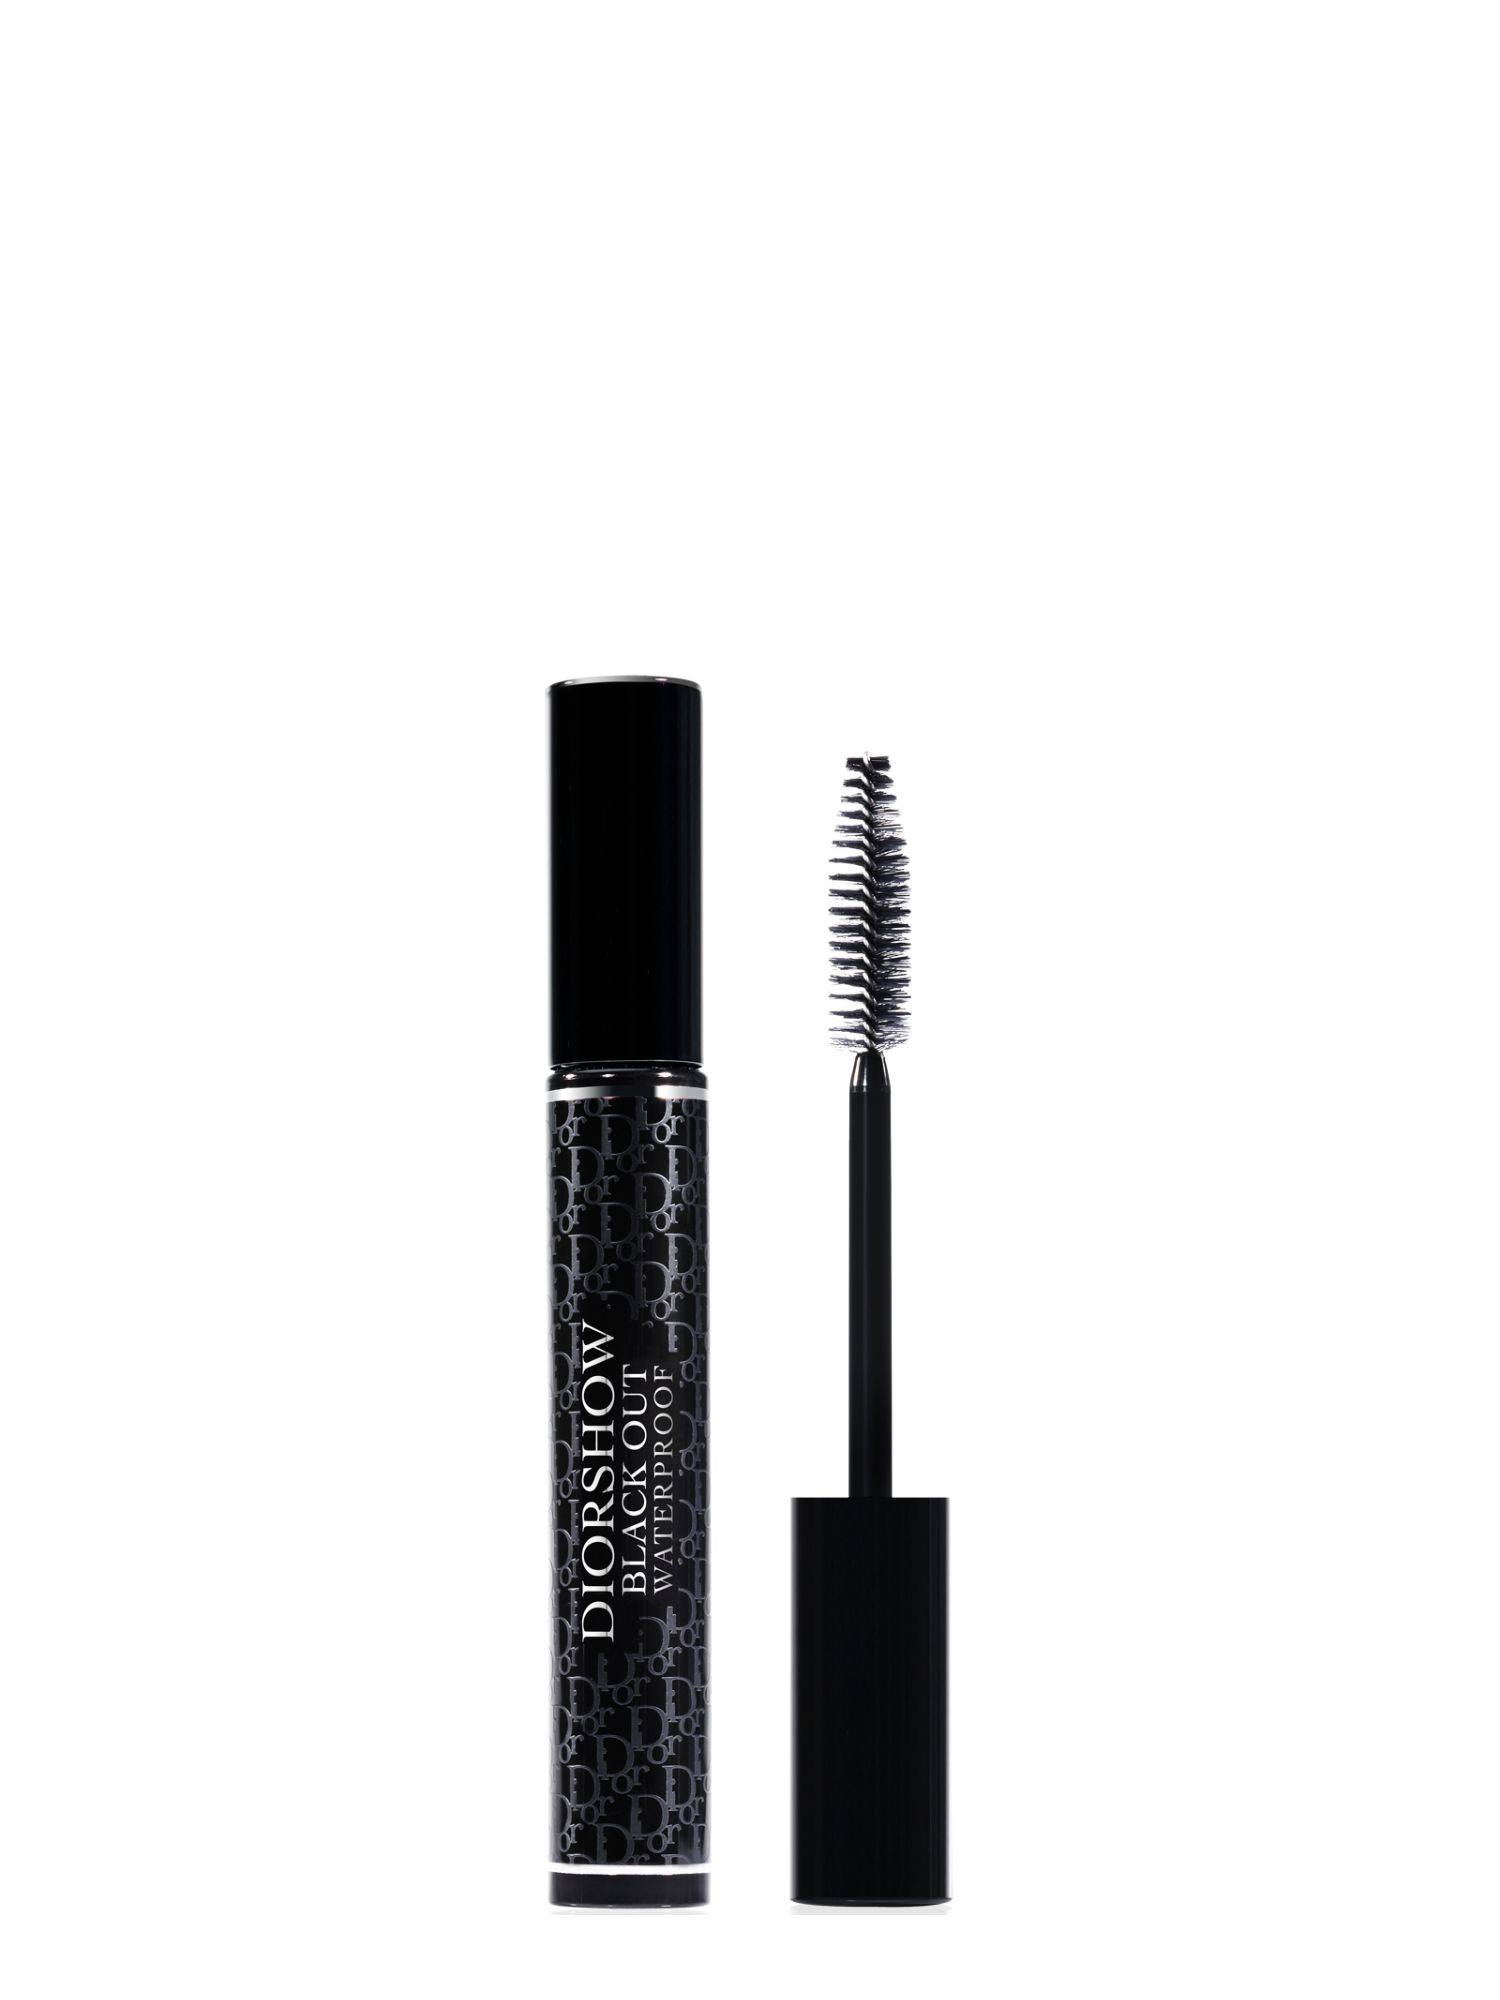 Dior Diorshow Black Out Waterproof Volume Mascara